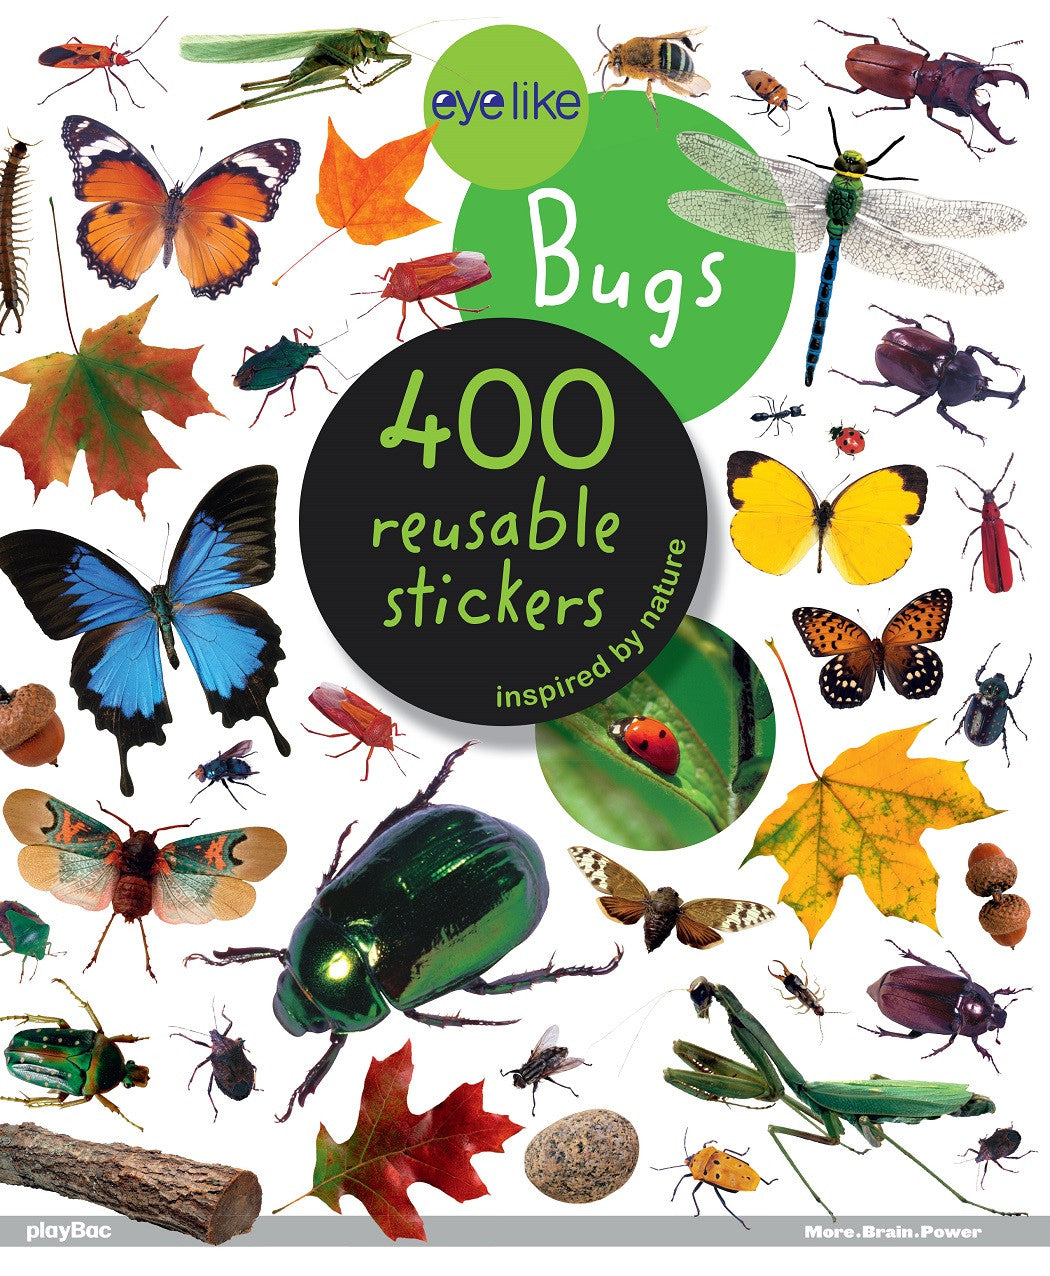 Eyelike Sticker Book: Bugs of the World w/400 Reusable Stickers - Off The Wall Toys and Gifts